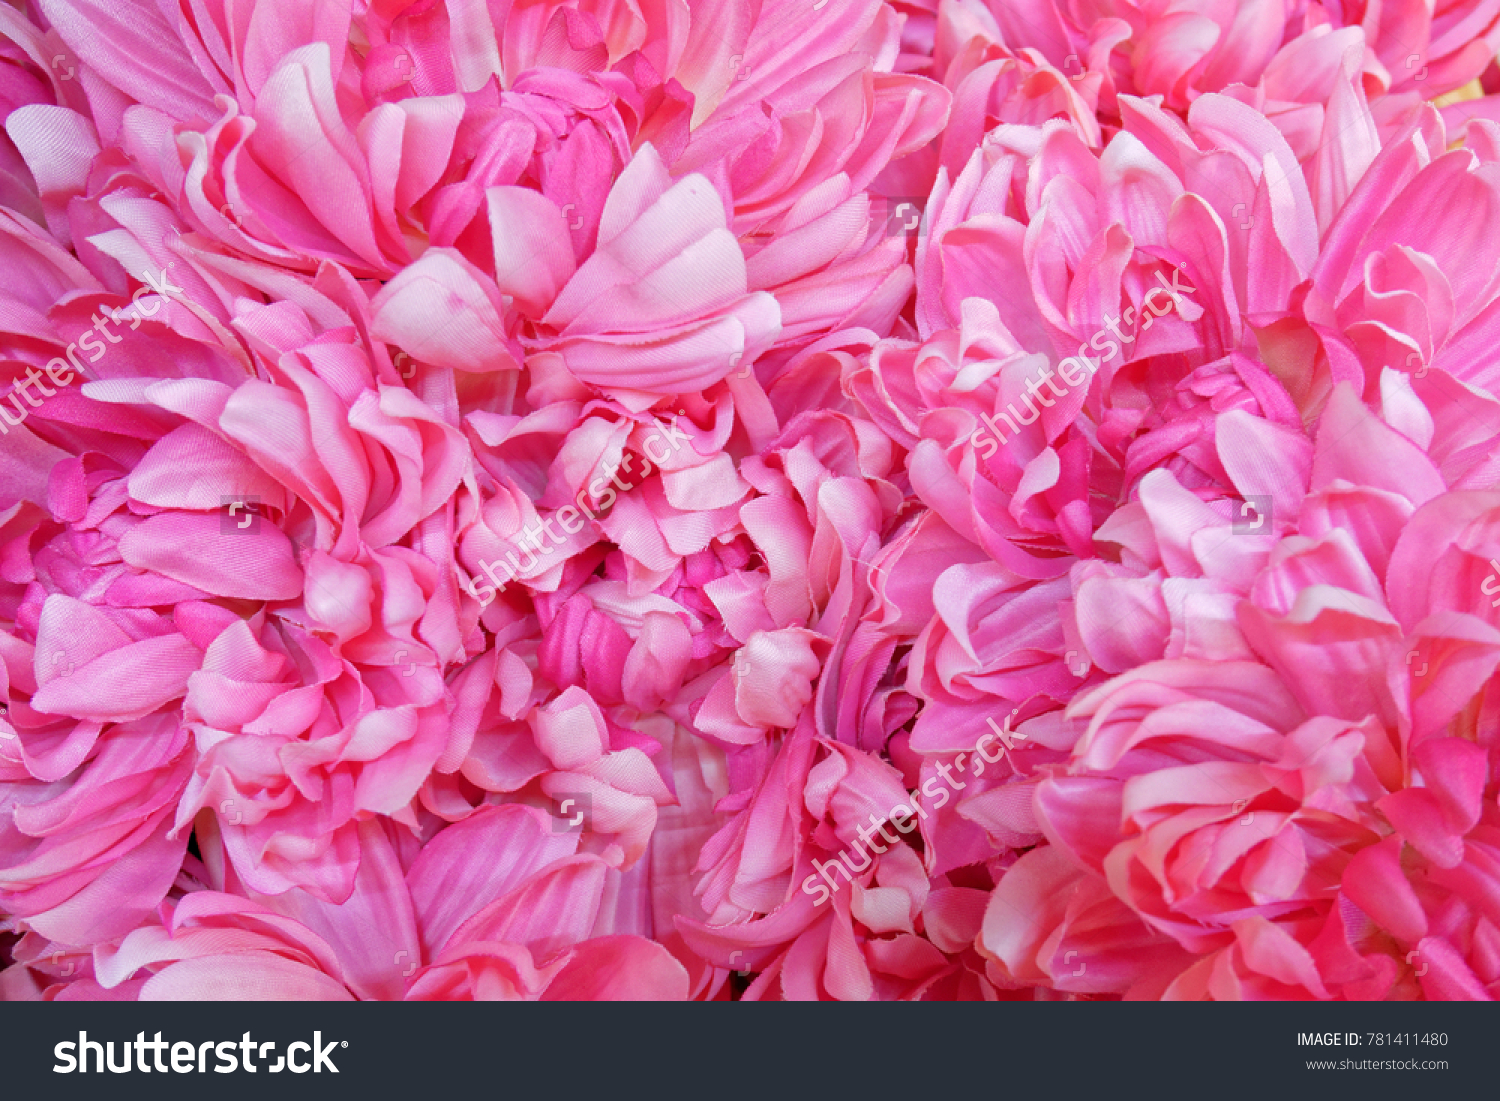 Vibrant Violet Pink Fake Flowers Background Stock Photo Edit Now